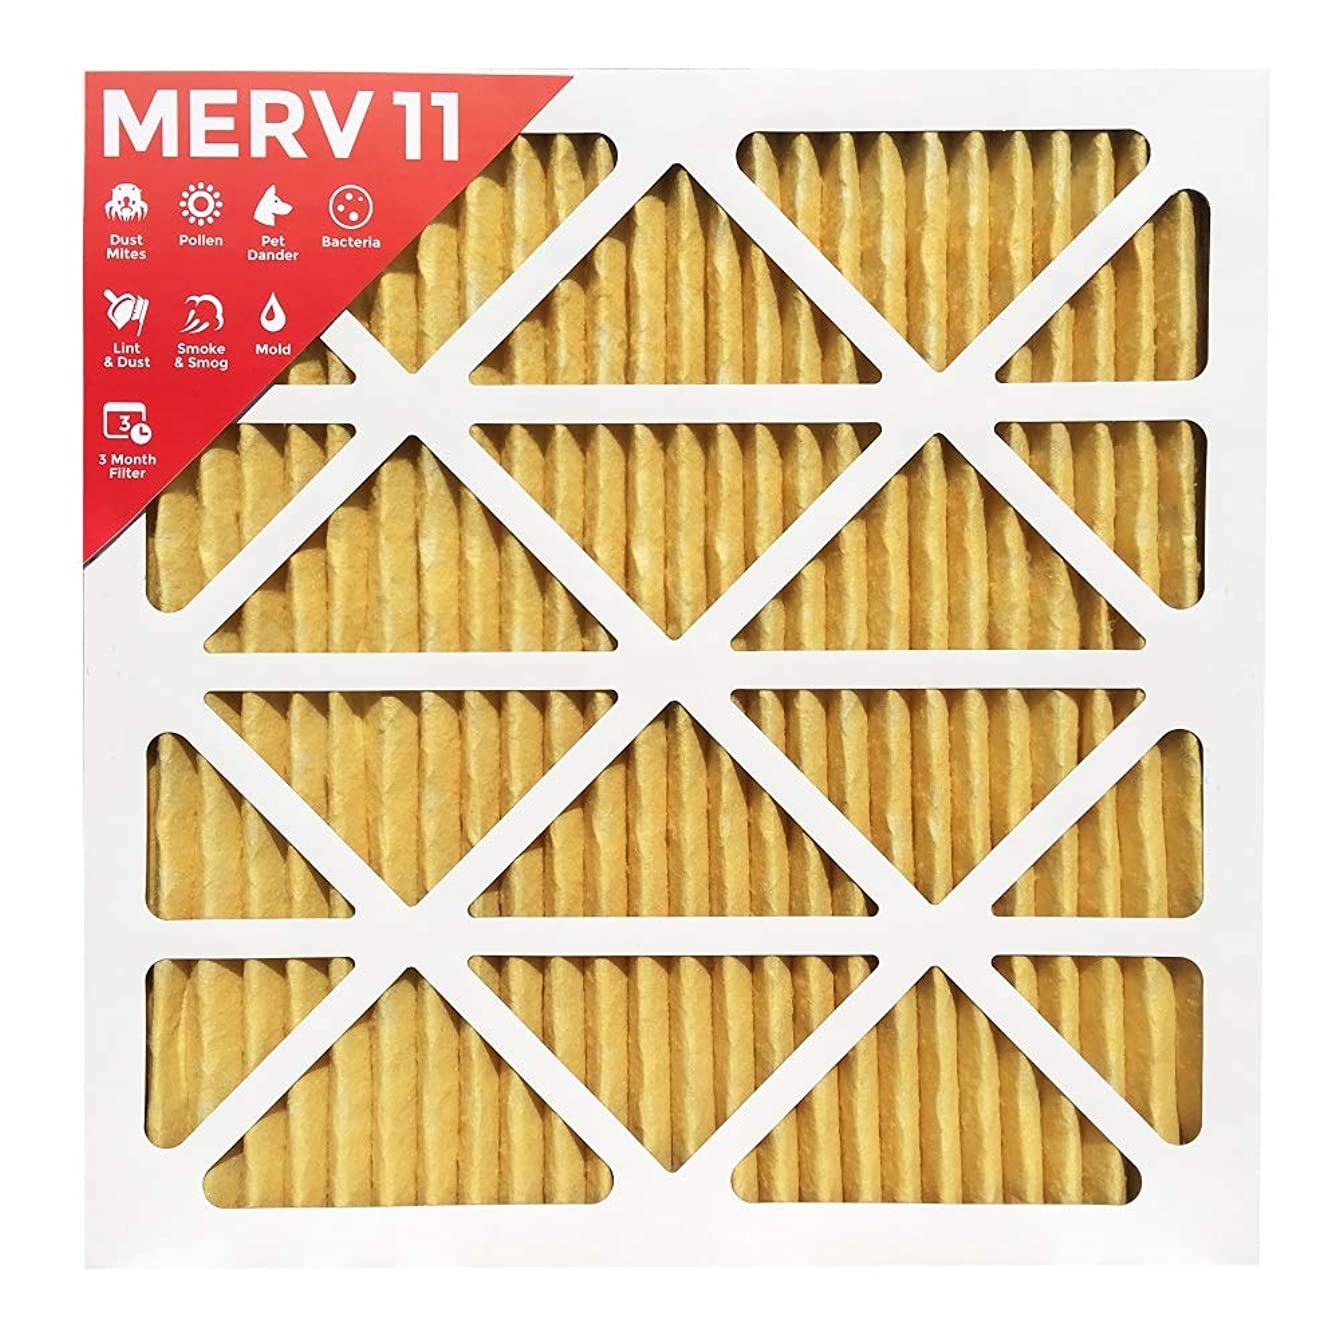 20x22x1 MERV 11 (MPR 1000) Pleated AC Furnace Air Filter - 6 Pack (Actual Size: 19-1/2